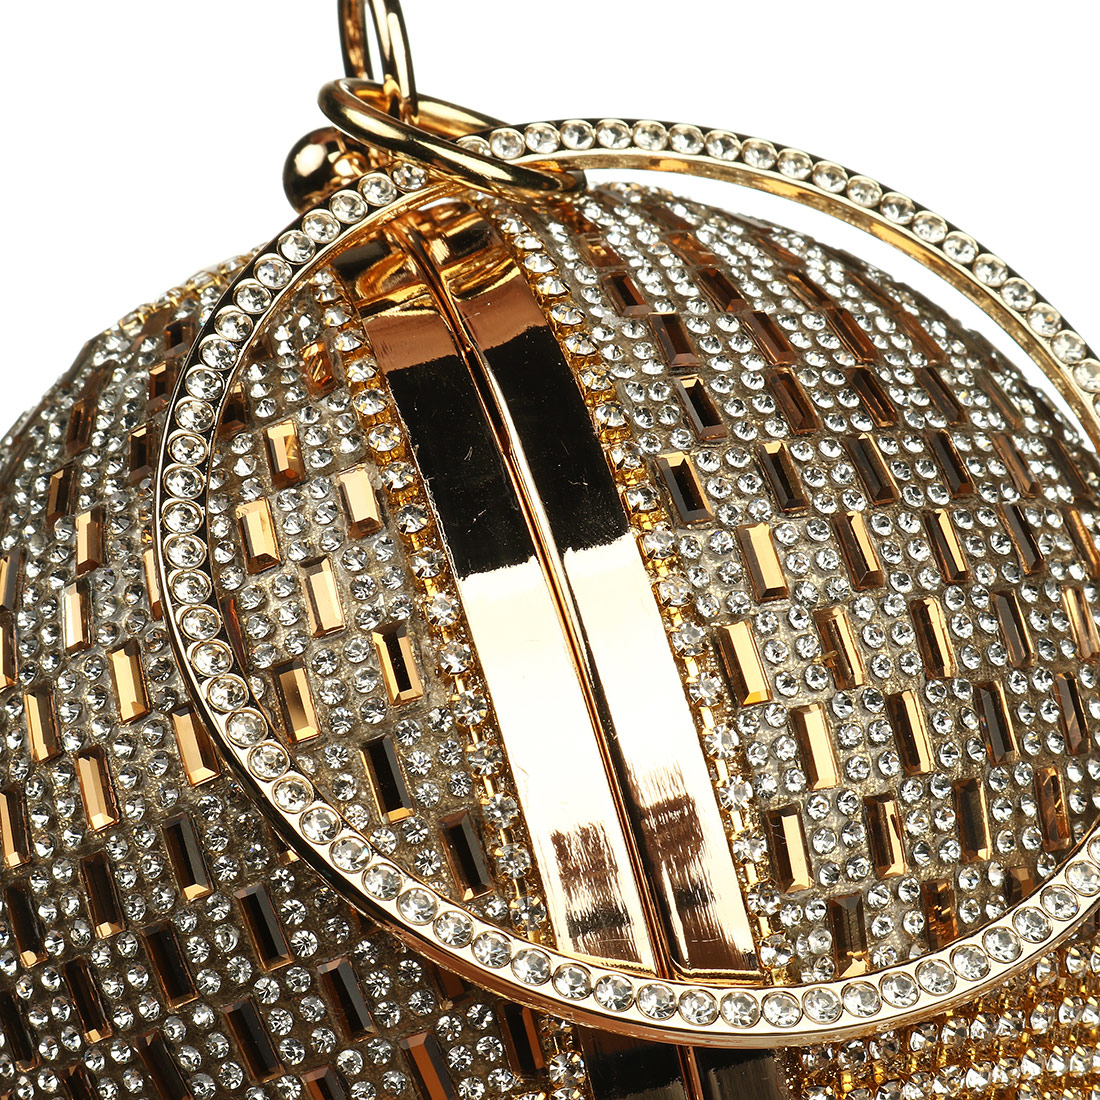 H88387f09a05c47078c415586e50384des - Sliver Diamonds Rhinestone Round Ball Evening Bags For Women Fashion Mini Tassels Clutch Bag Ladies Ring Handbag Clutches